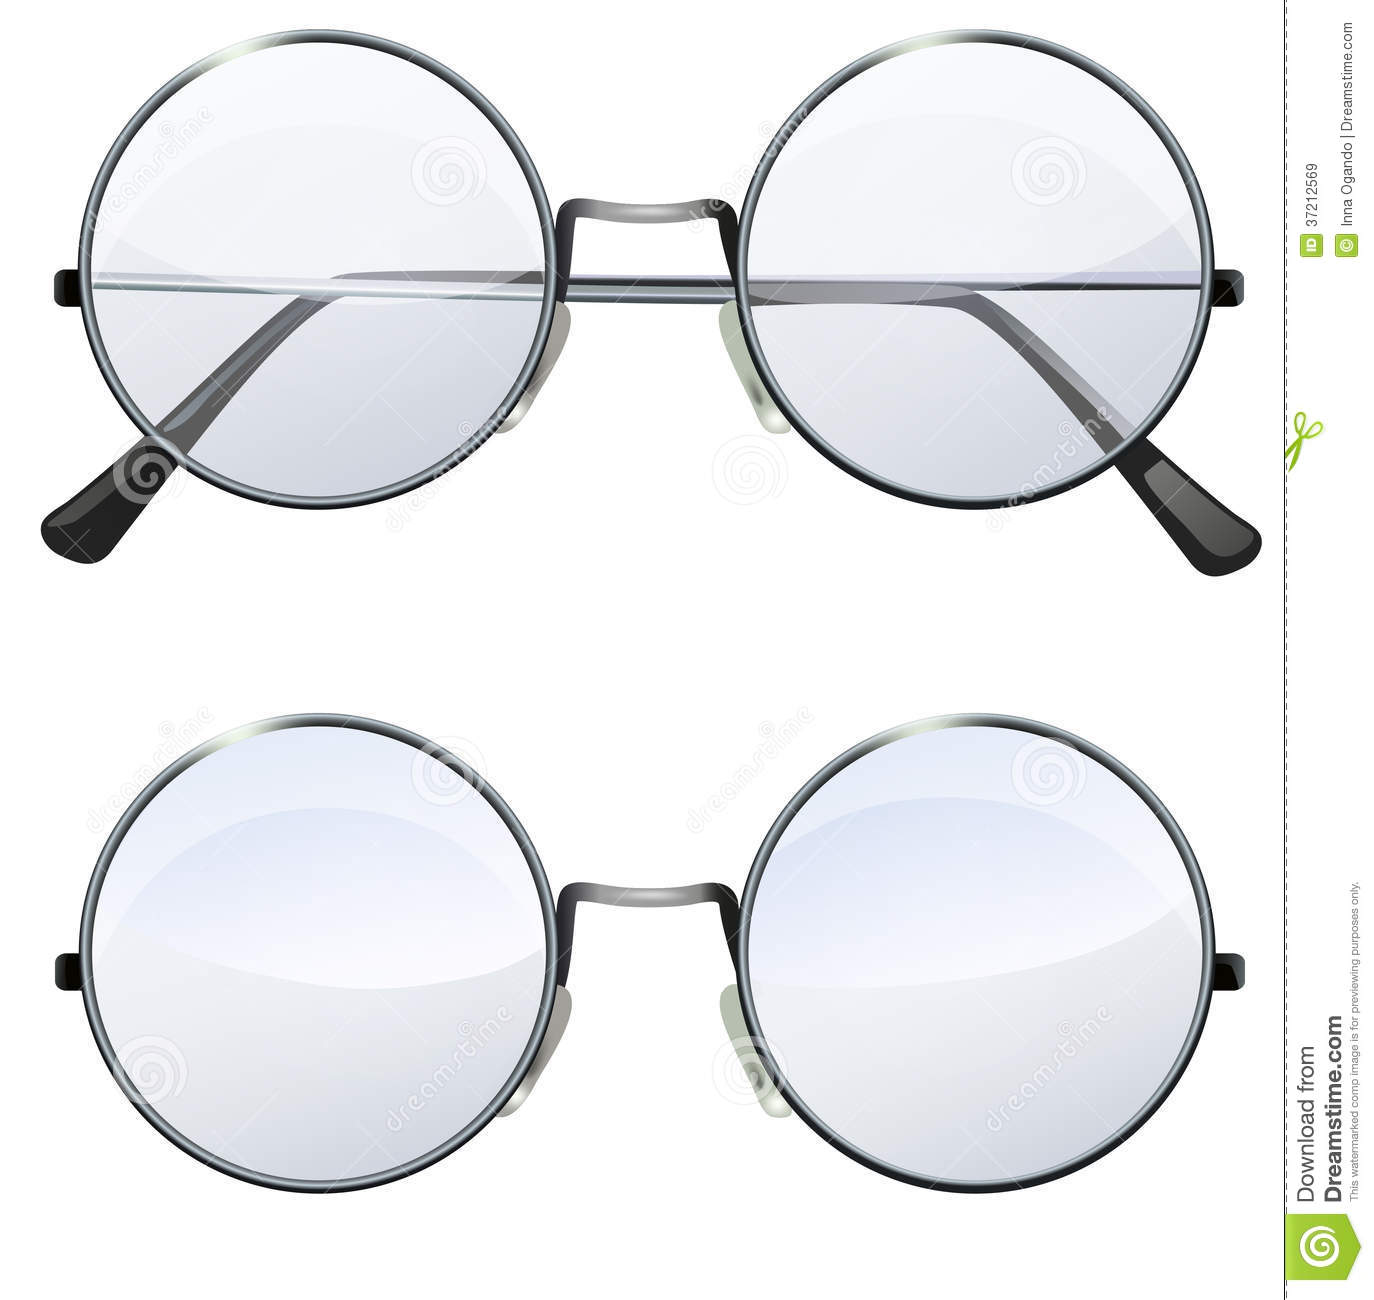 S Scientist Round Glasses